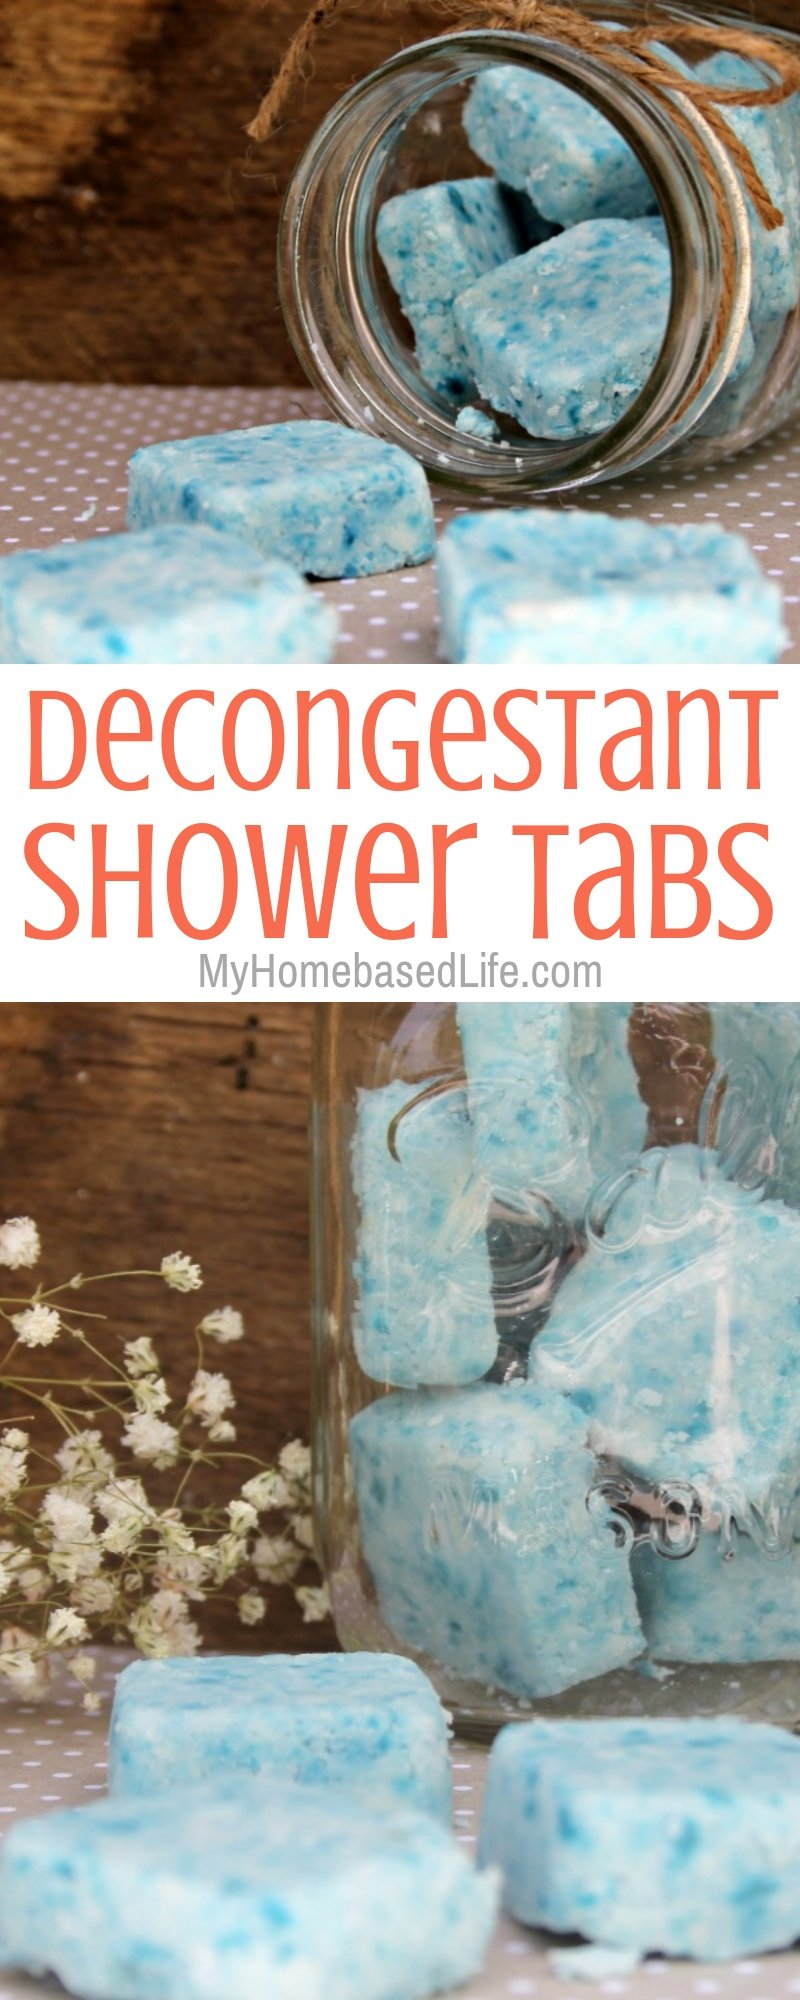 These Decongestant Shower Tablets are so easy to make and easy to use, which is the best kind of parenting hack in my book. #myhomebasedlife #parenthack #essentialoils #decongestant #howto | Decongestant Remedies | Home Remedies | Decongestant Shower Tablets | Shower Tablets | Homemade Shower Tablets | Essential Oil Tablets | Parent Hack | Cold Hack